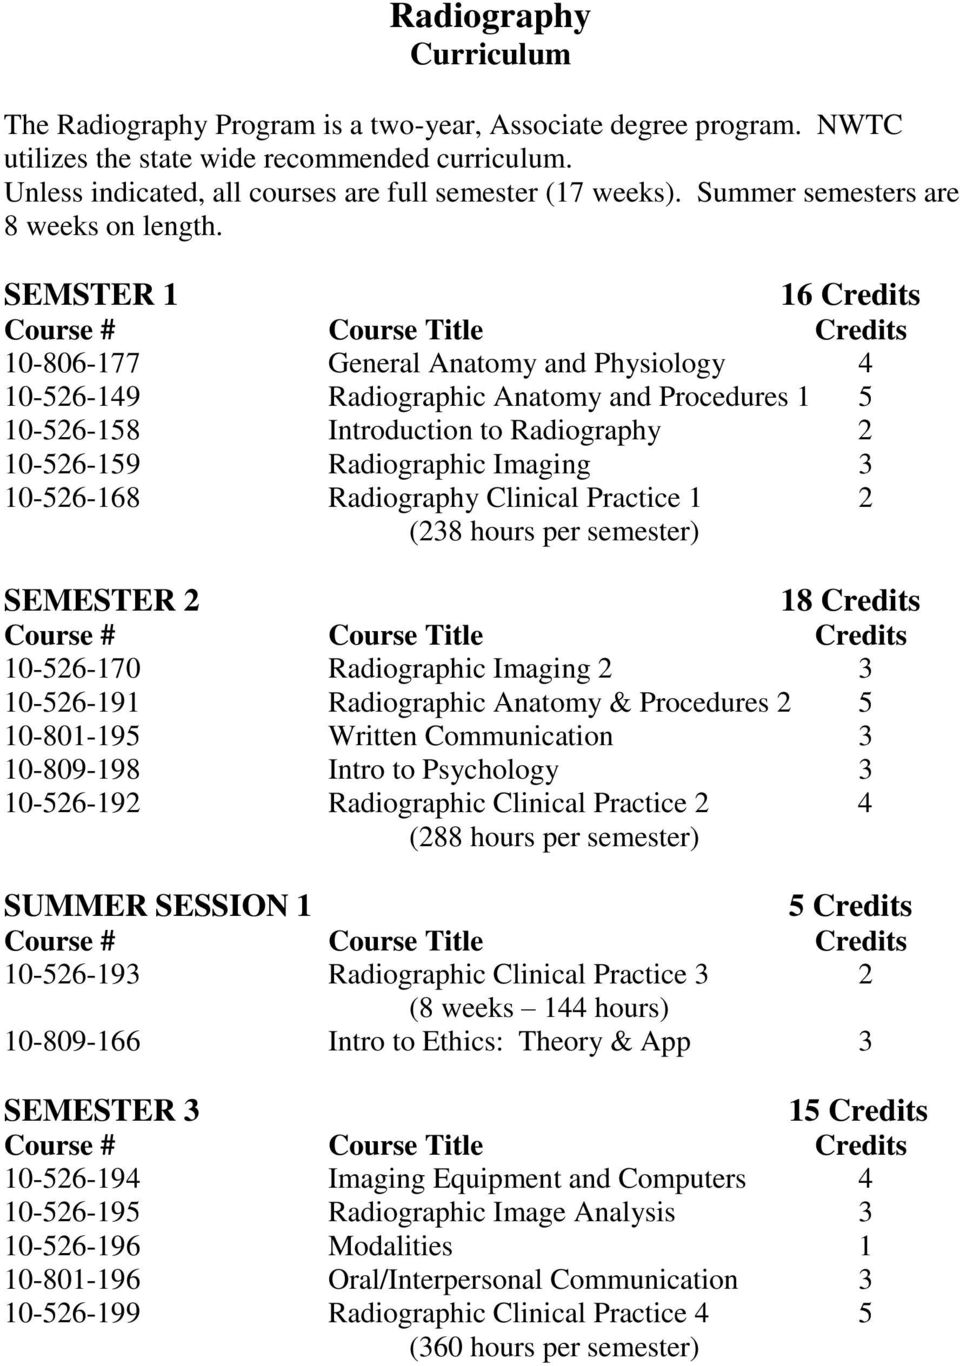 SEMSTER 1 16 Credits 10-806-177 General Anatomy and Physiology 4 10-526-149 Radiographic Anatomy and Procedures 1 5 10-526-158 Introduction to Radiography 2 10-526-159 Radiographic Imaging 3